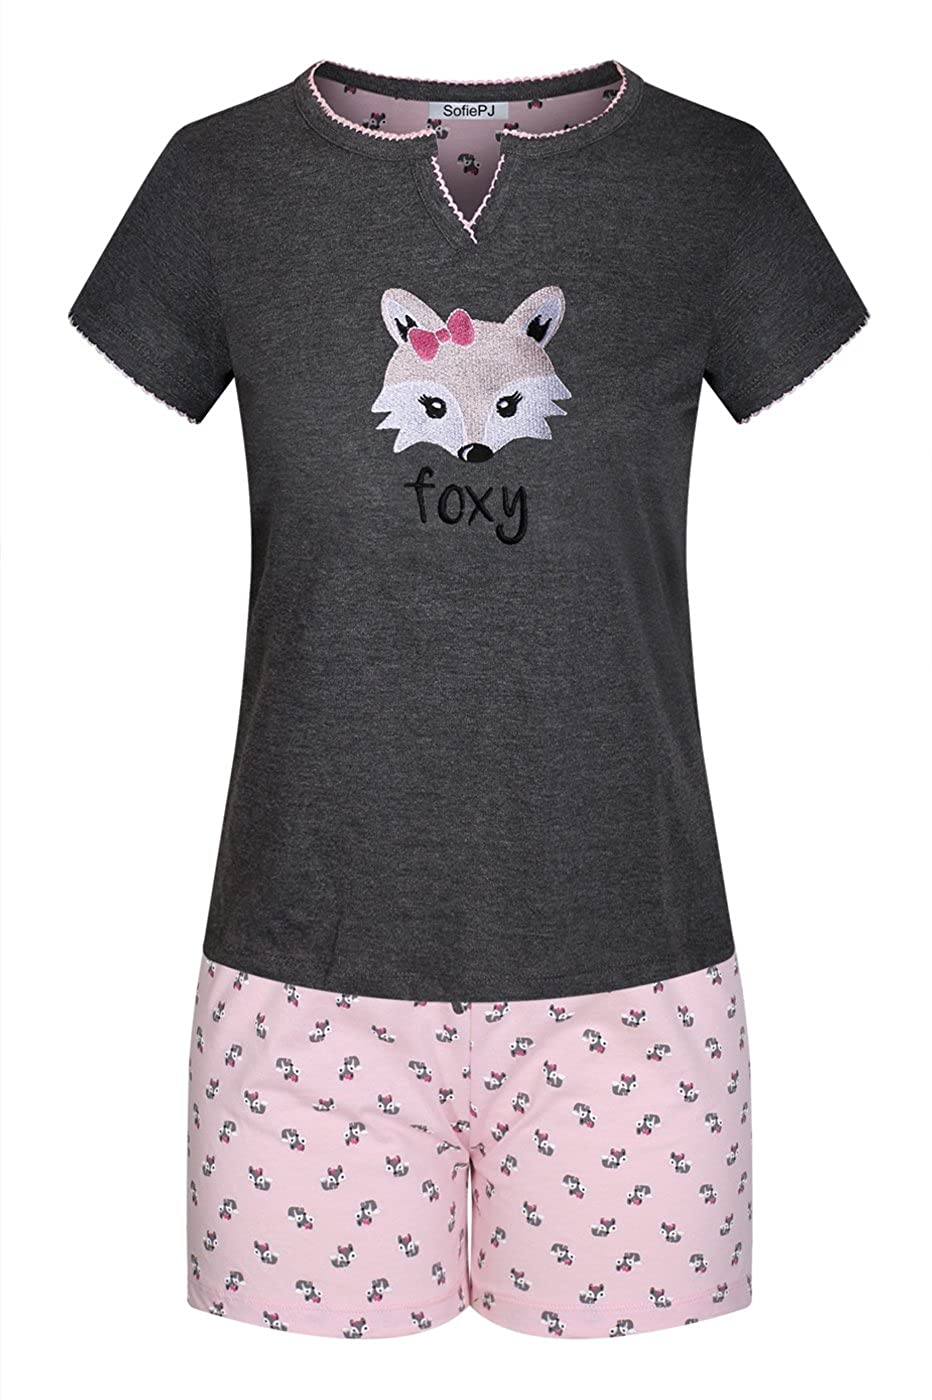 Charcoal Foxy SofiePJ Women's Printed Cotton Short Sleeve Pajama Set with Short Pants